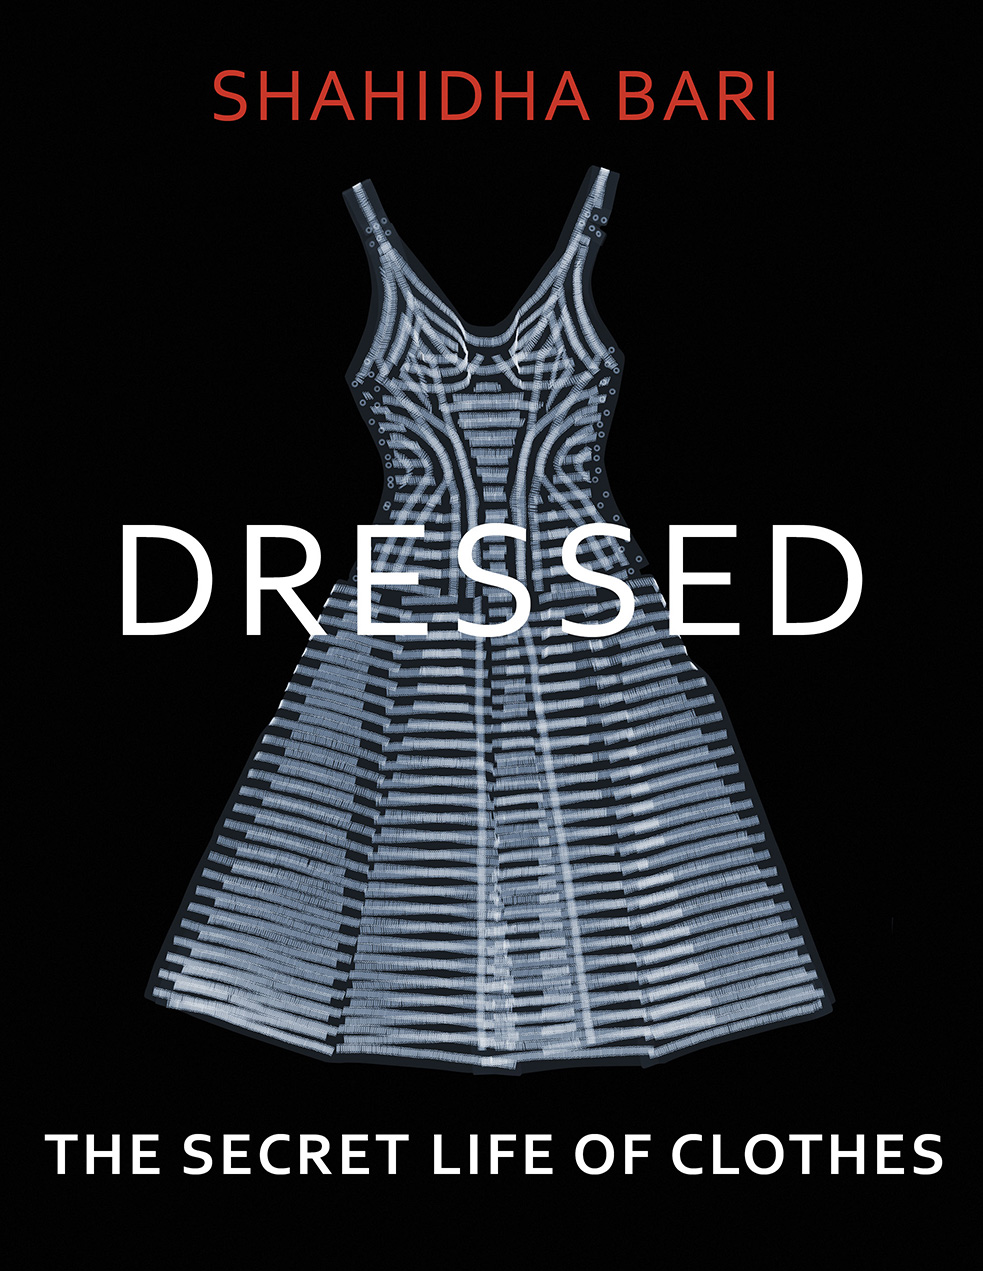 Book cover with black background and x-ray image of a-line dress